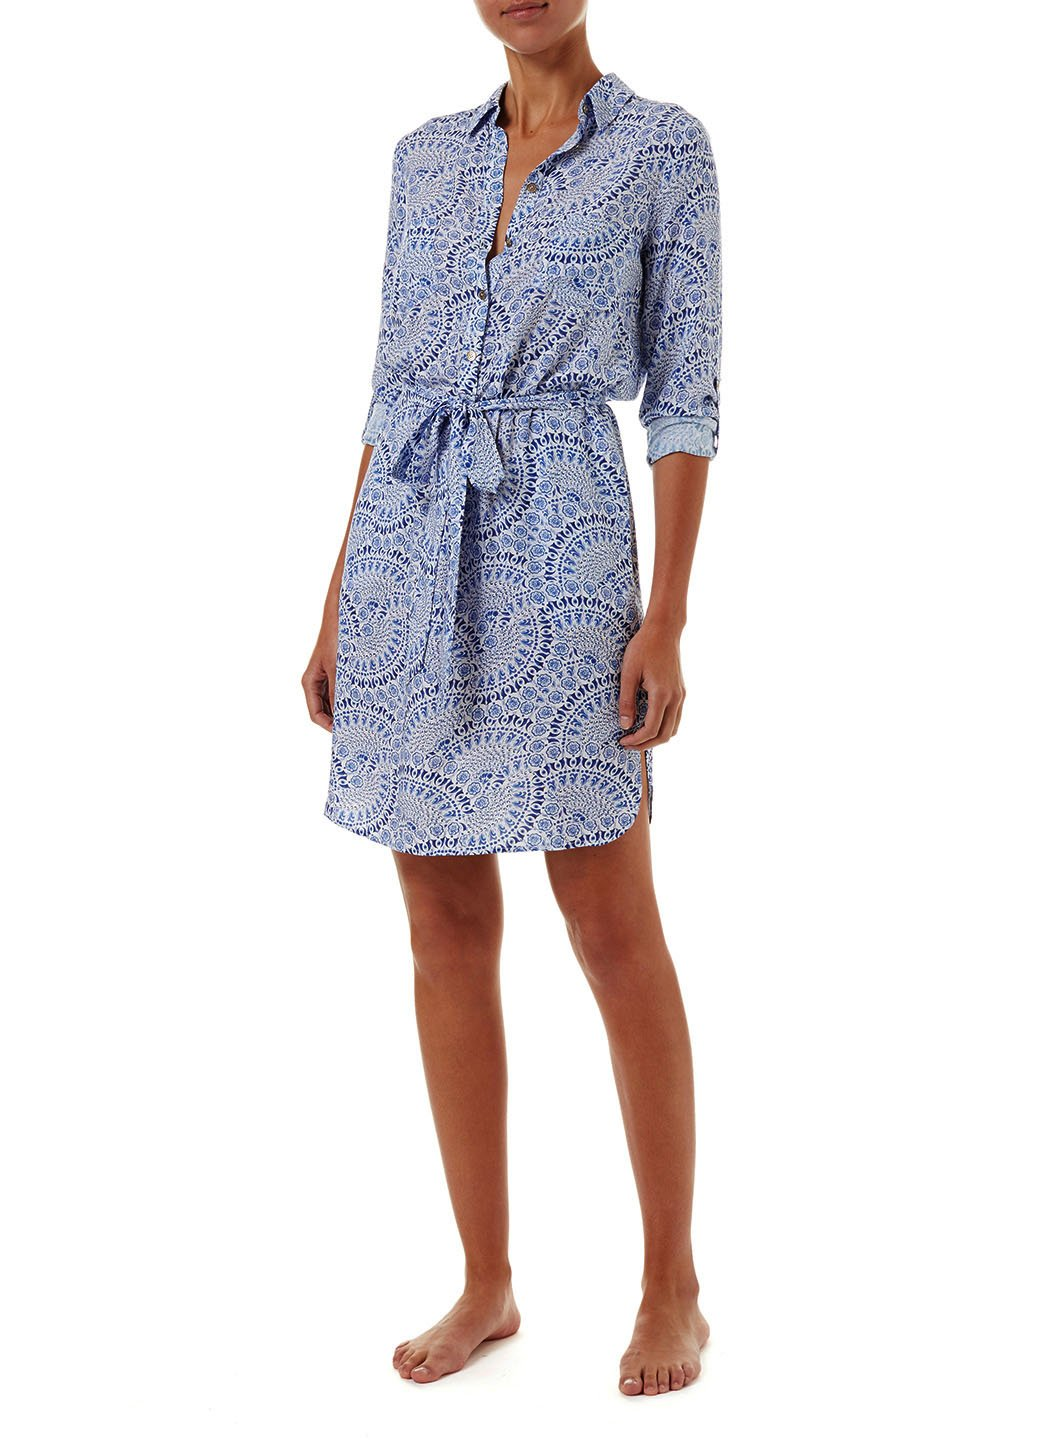 lois capri button down belted shirt dress 2019 F